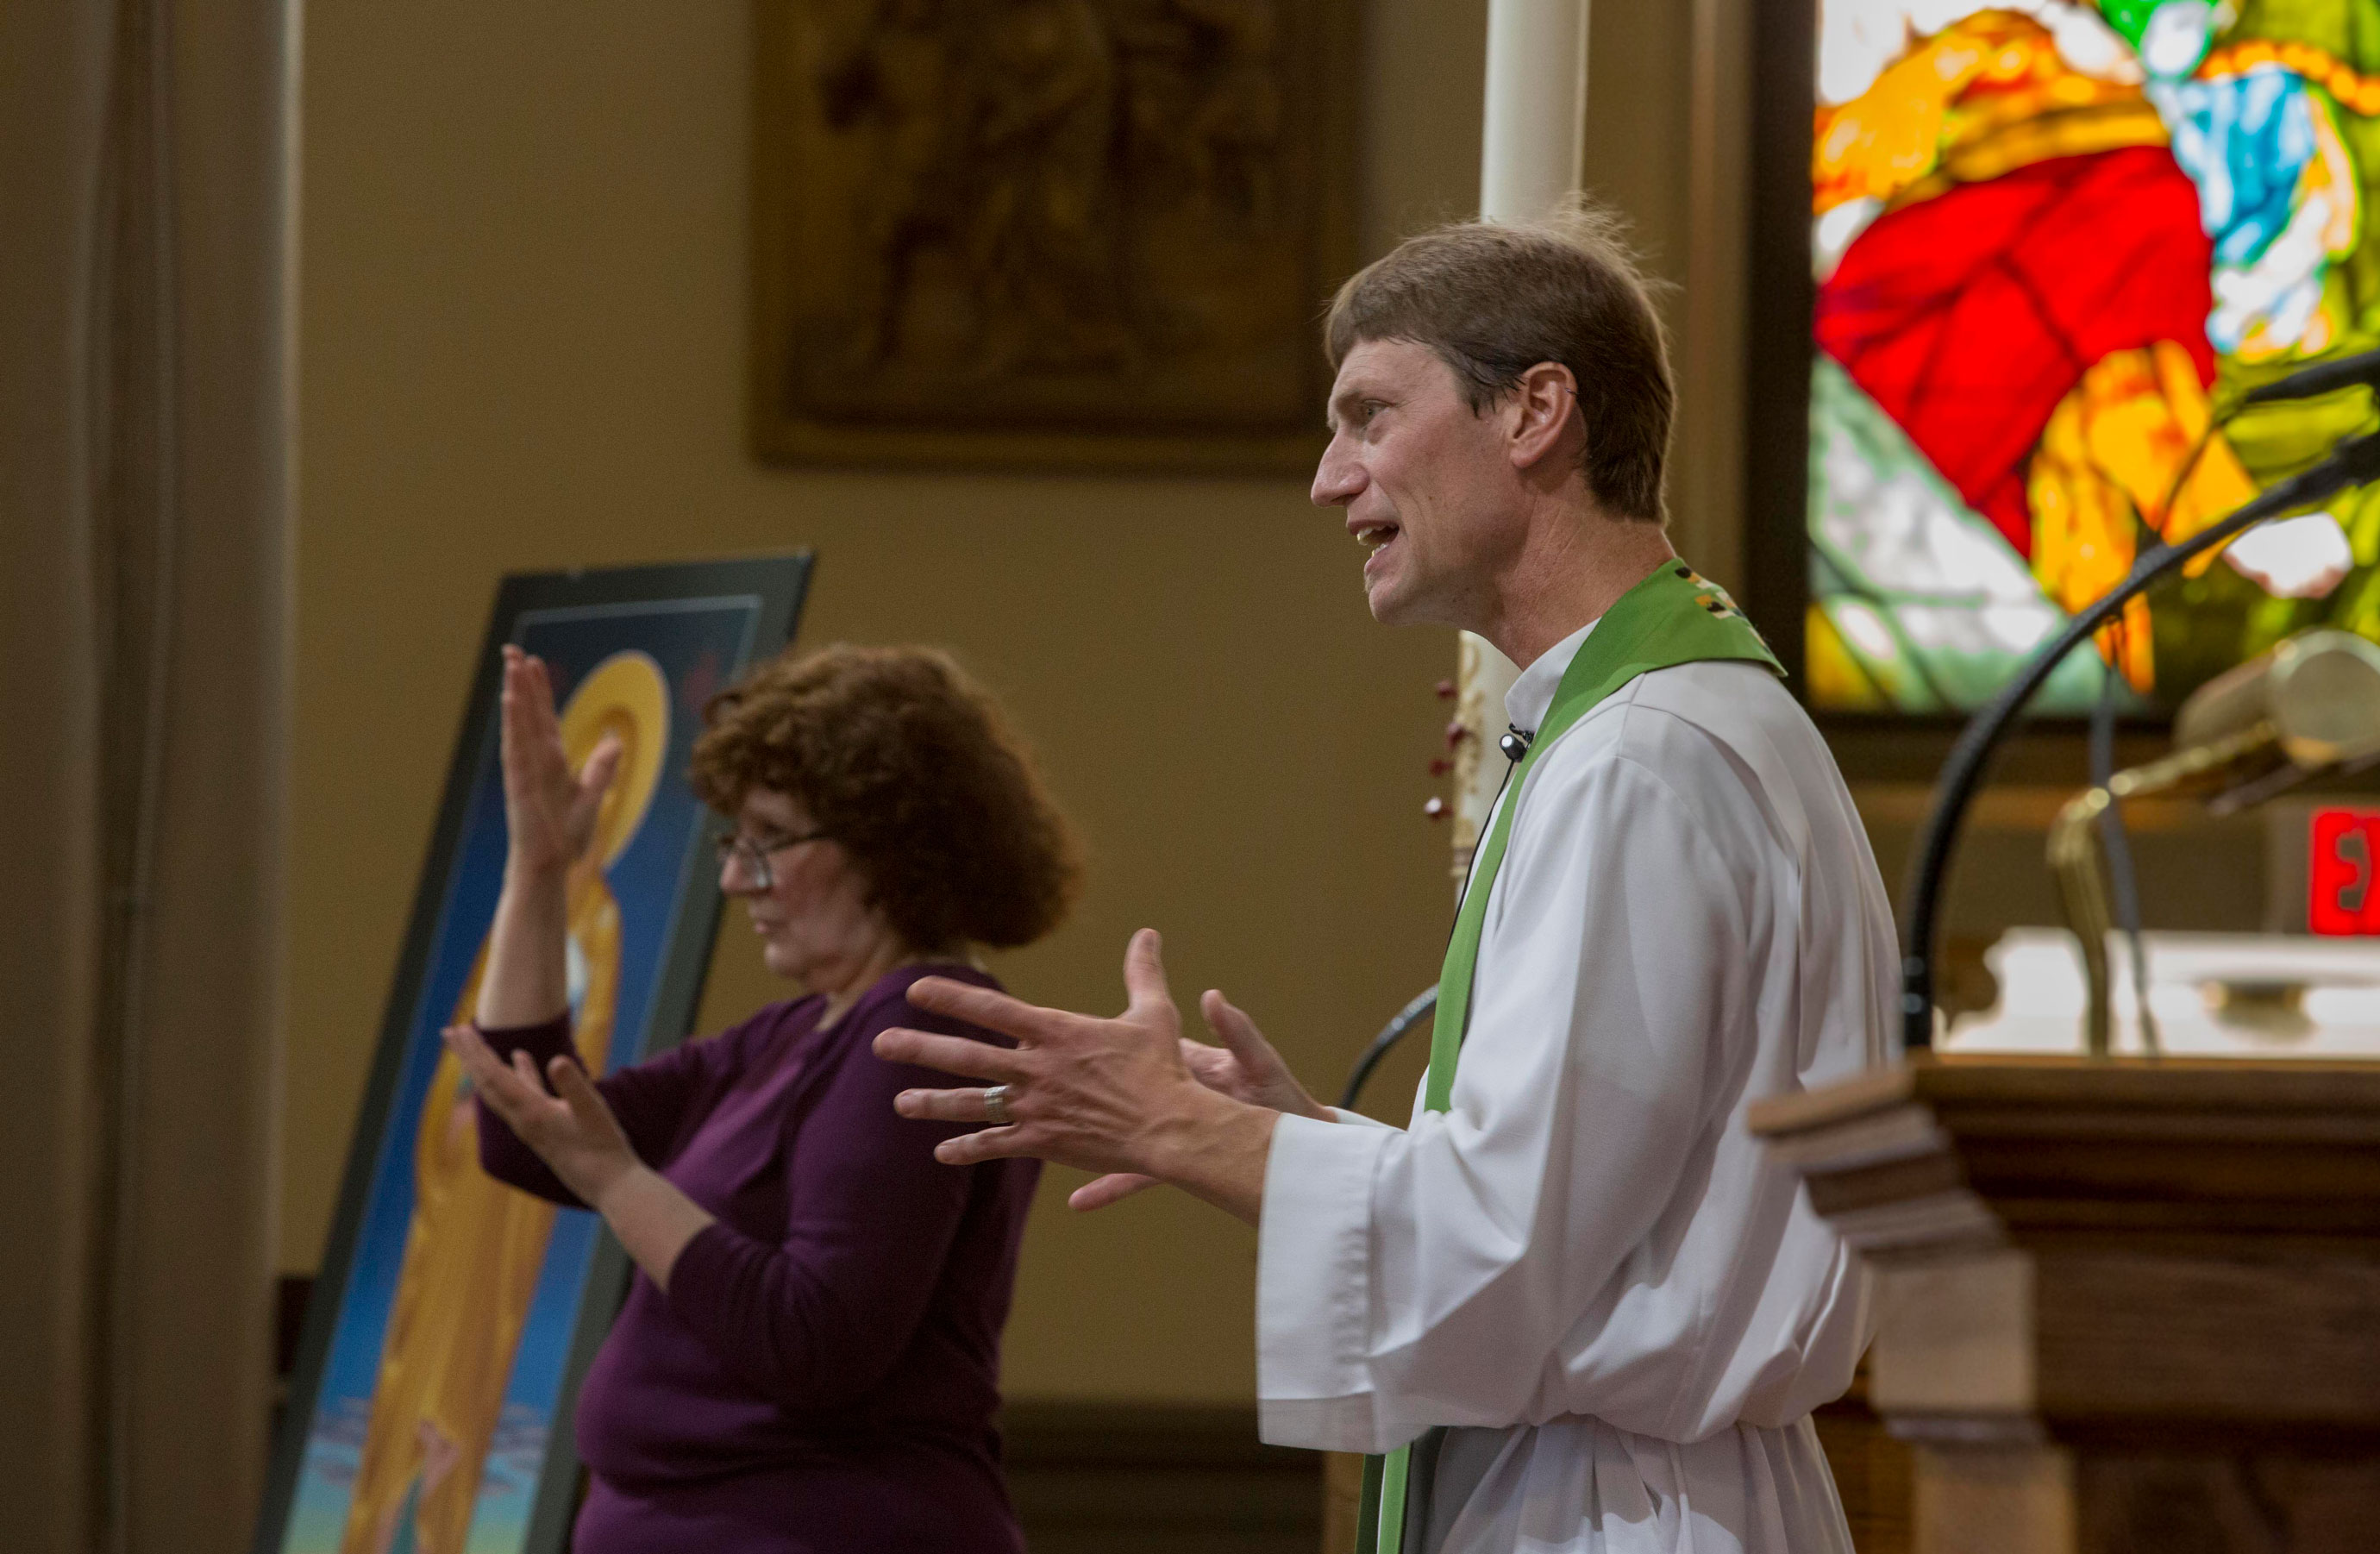 Photograph of a catholic priest delivering a sermon. He's inside a church in front of his congregation. In the background, a woman interprets his sermon in American Sign Language along with him.